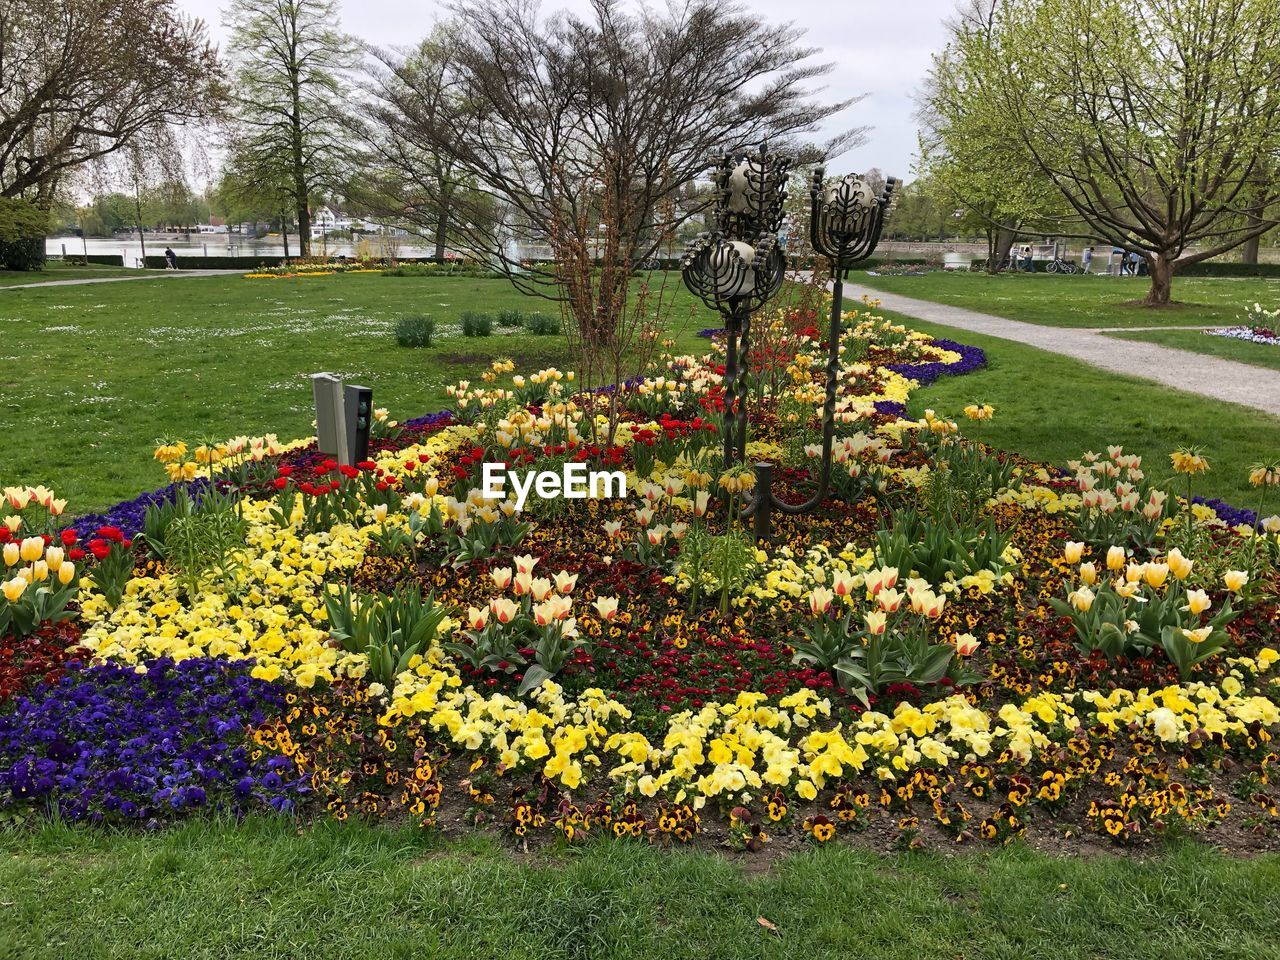 plant, flowering plant, flower, beauty in nature, growth, grass, nature, tree, park, freshness, tranquility, no people, park - man made space, day, yellow, tranquil scene, fragility, green color, vulnerability, field, outdoors, springtime, flowerbed, flower head